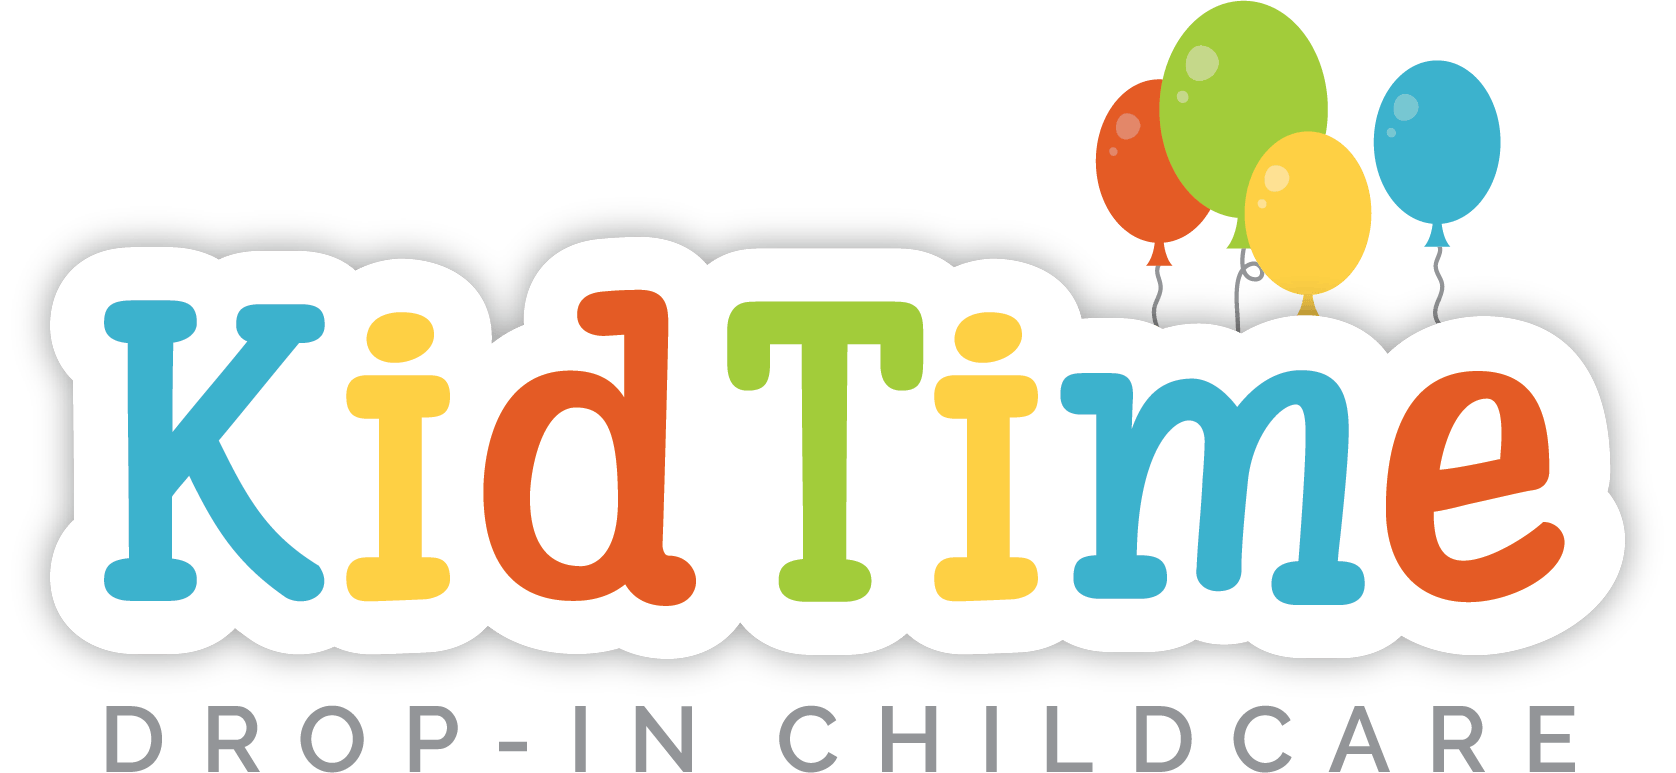 Hourly Drop-In Childcare